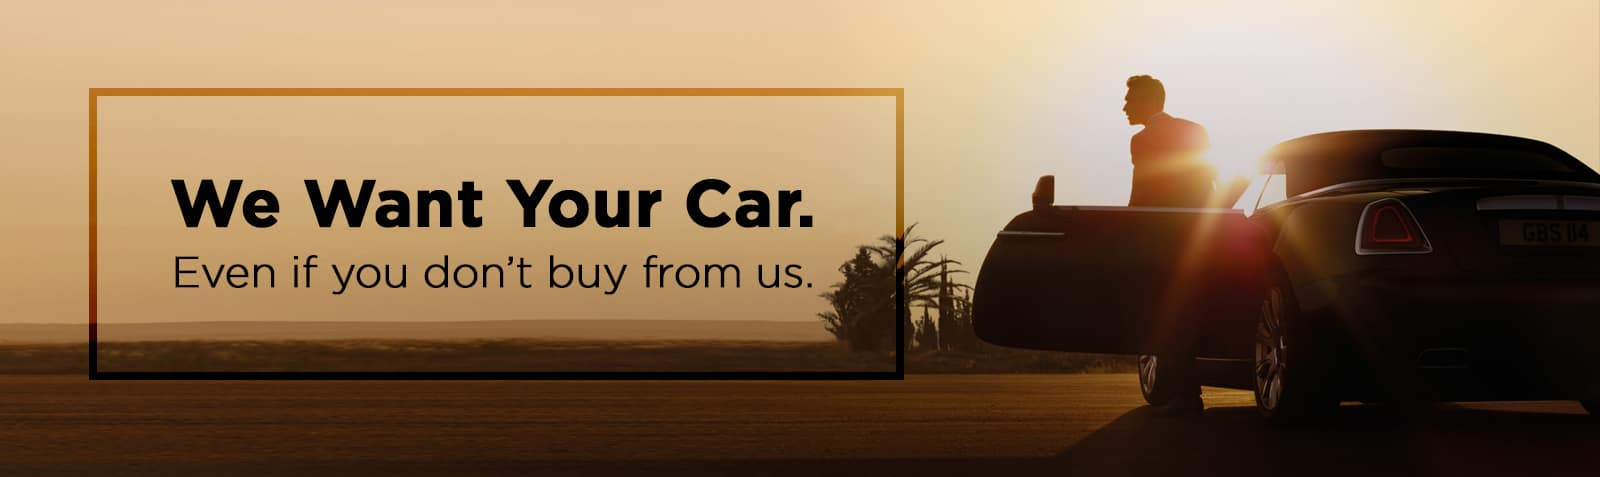 we want your car banner